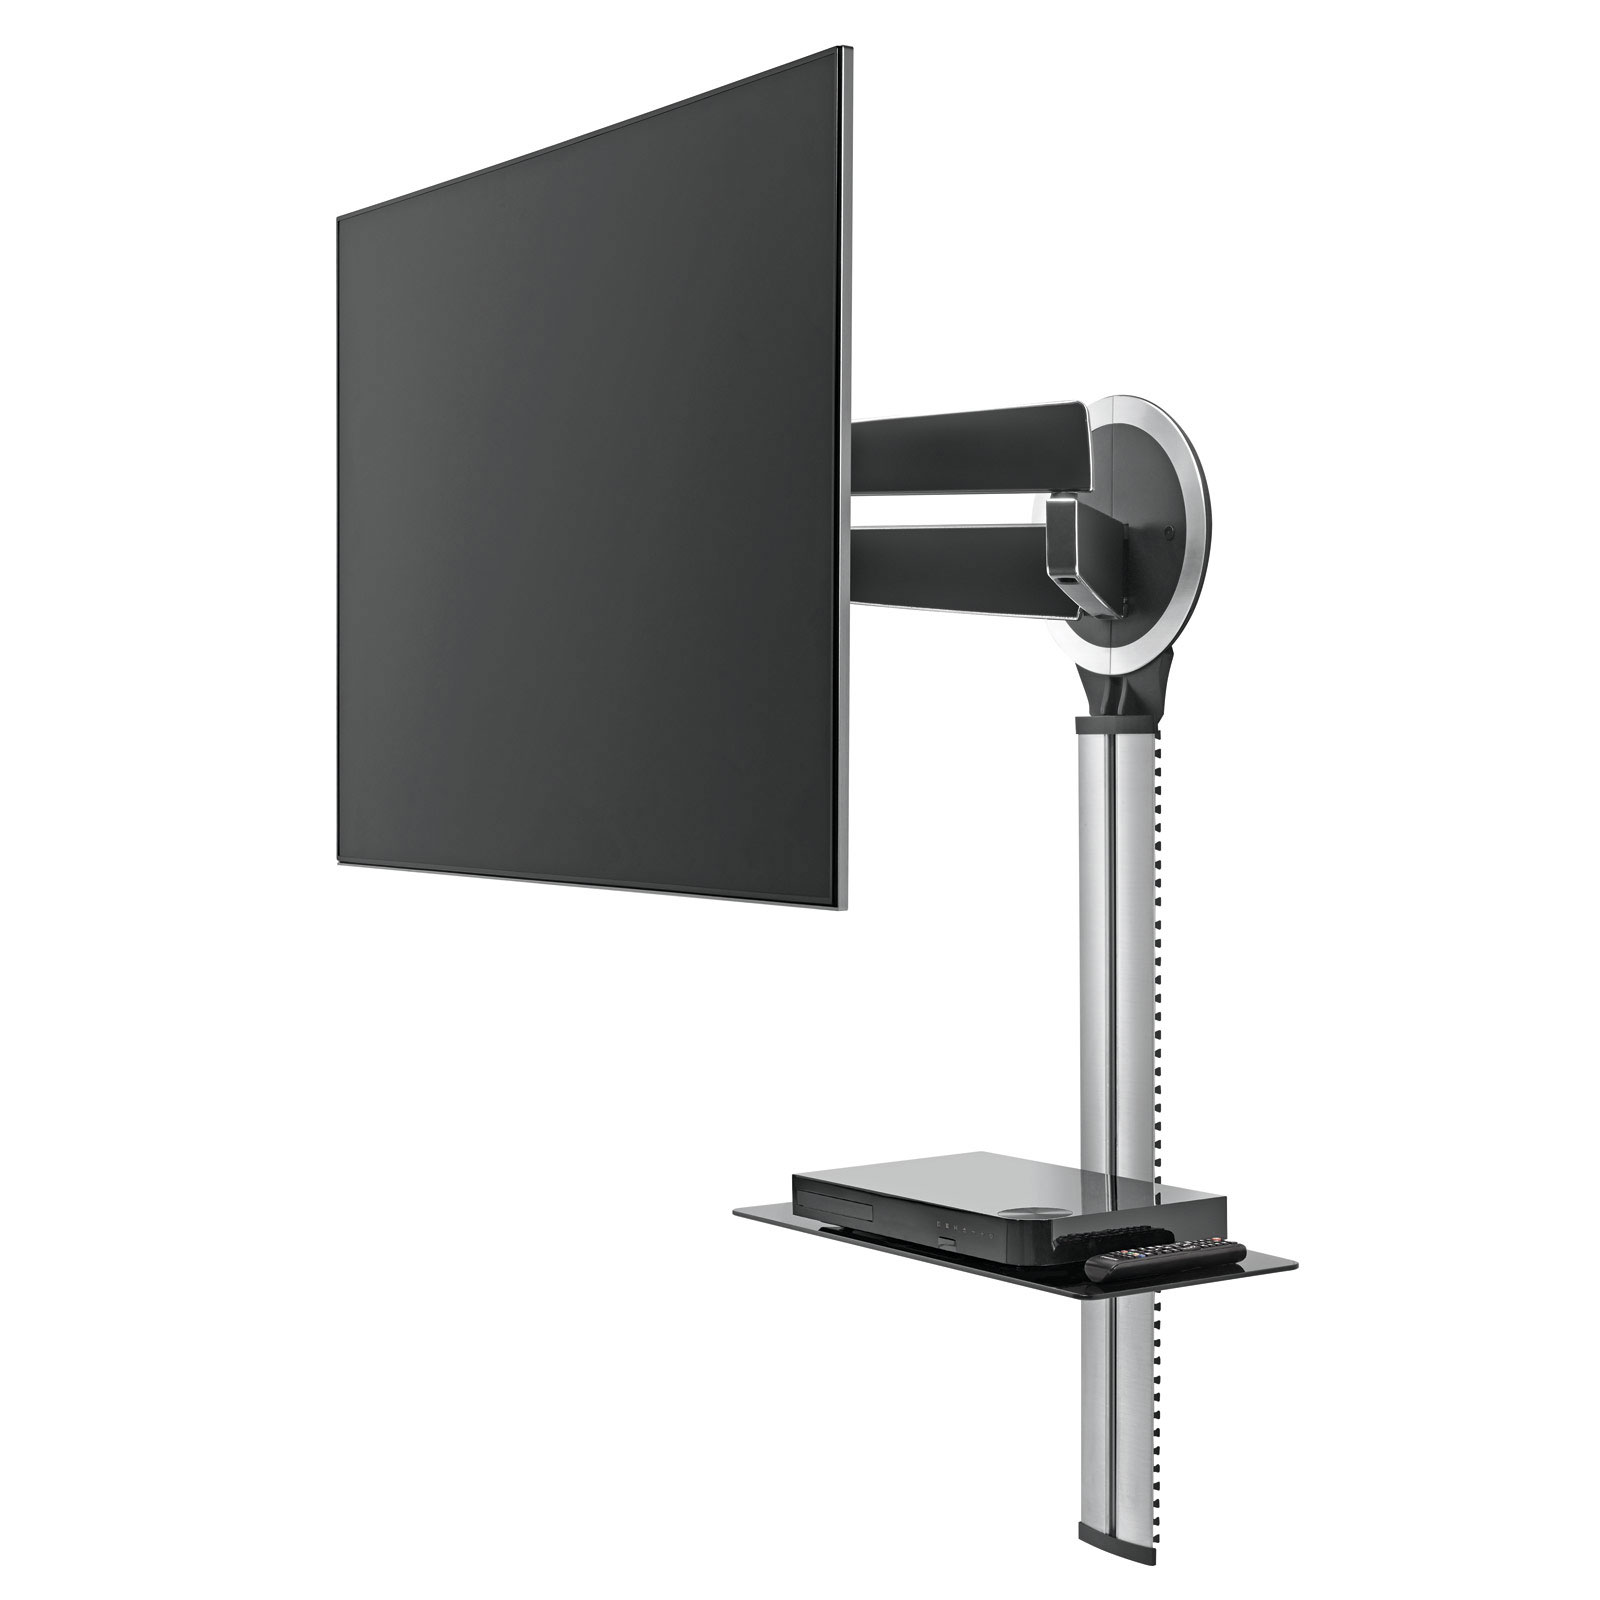 vogel 39 s designmount support mural tv vogel 39 s sur. Black Bedroom Furniture Sets. Home Design Ideas